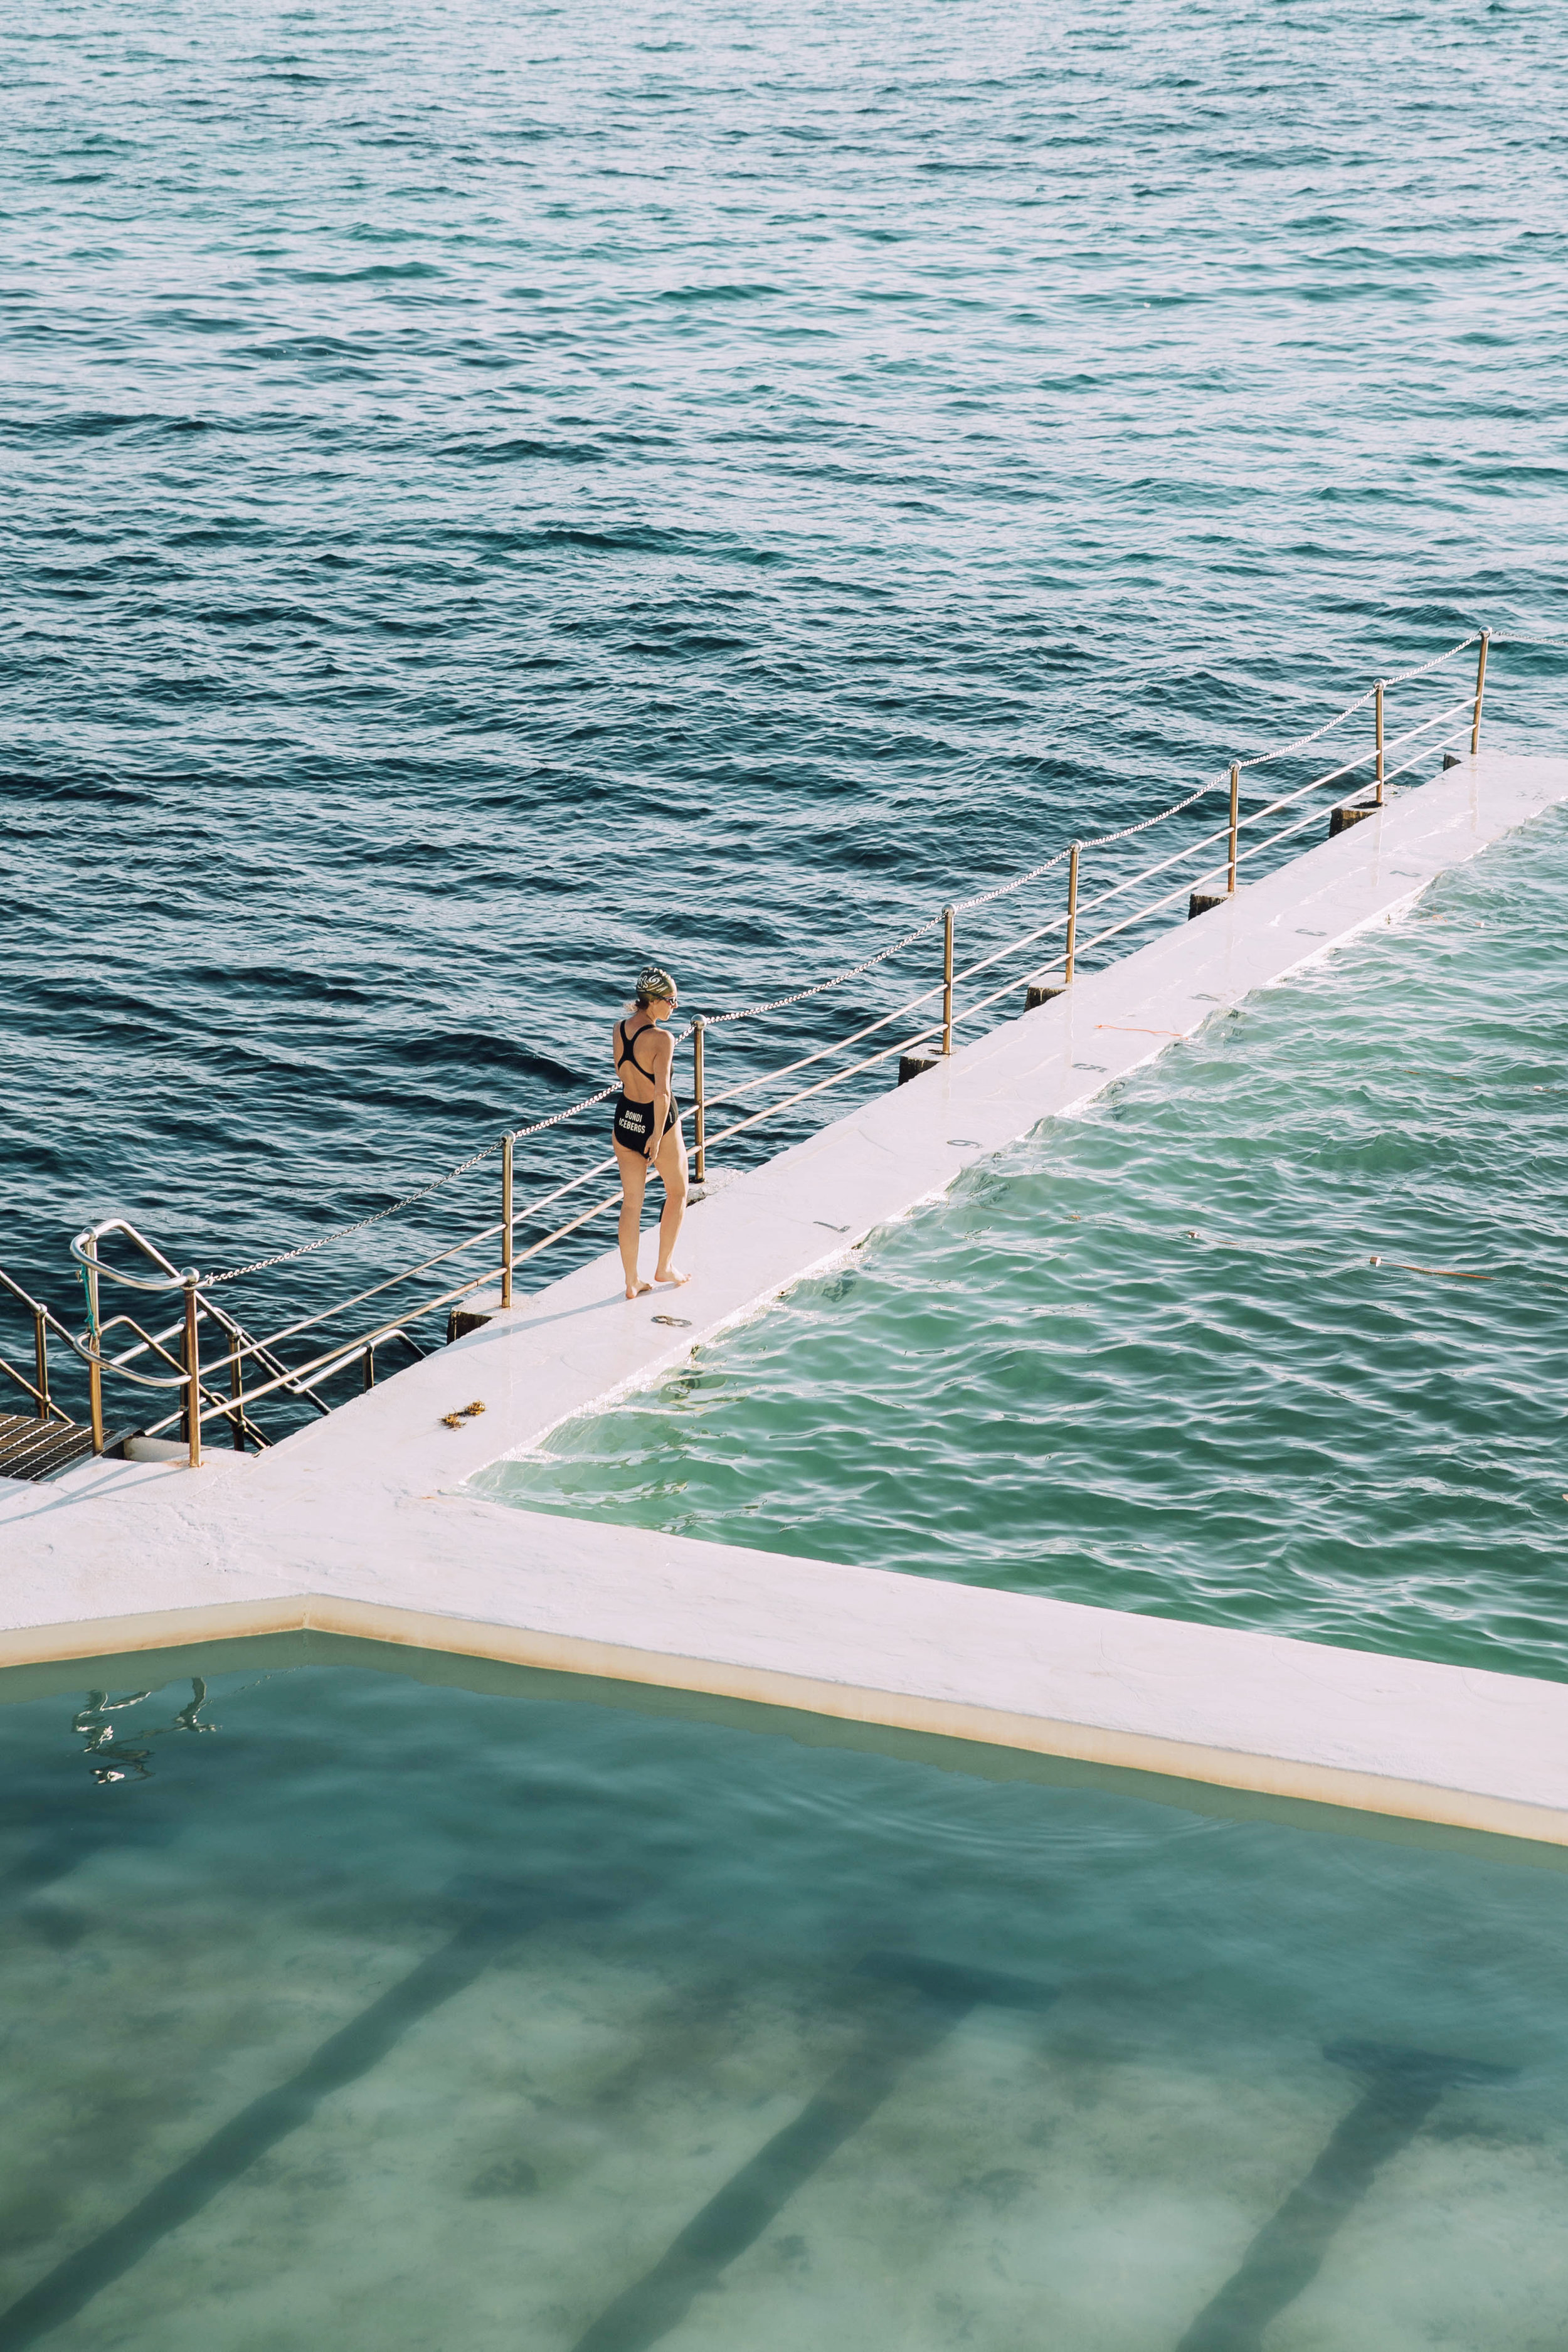 The Lonely Swimmer